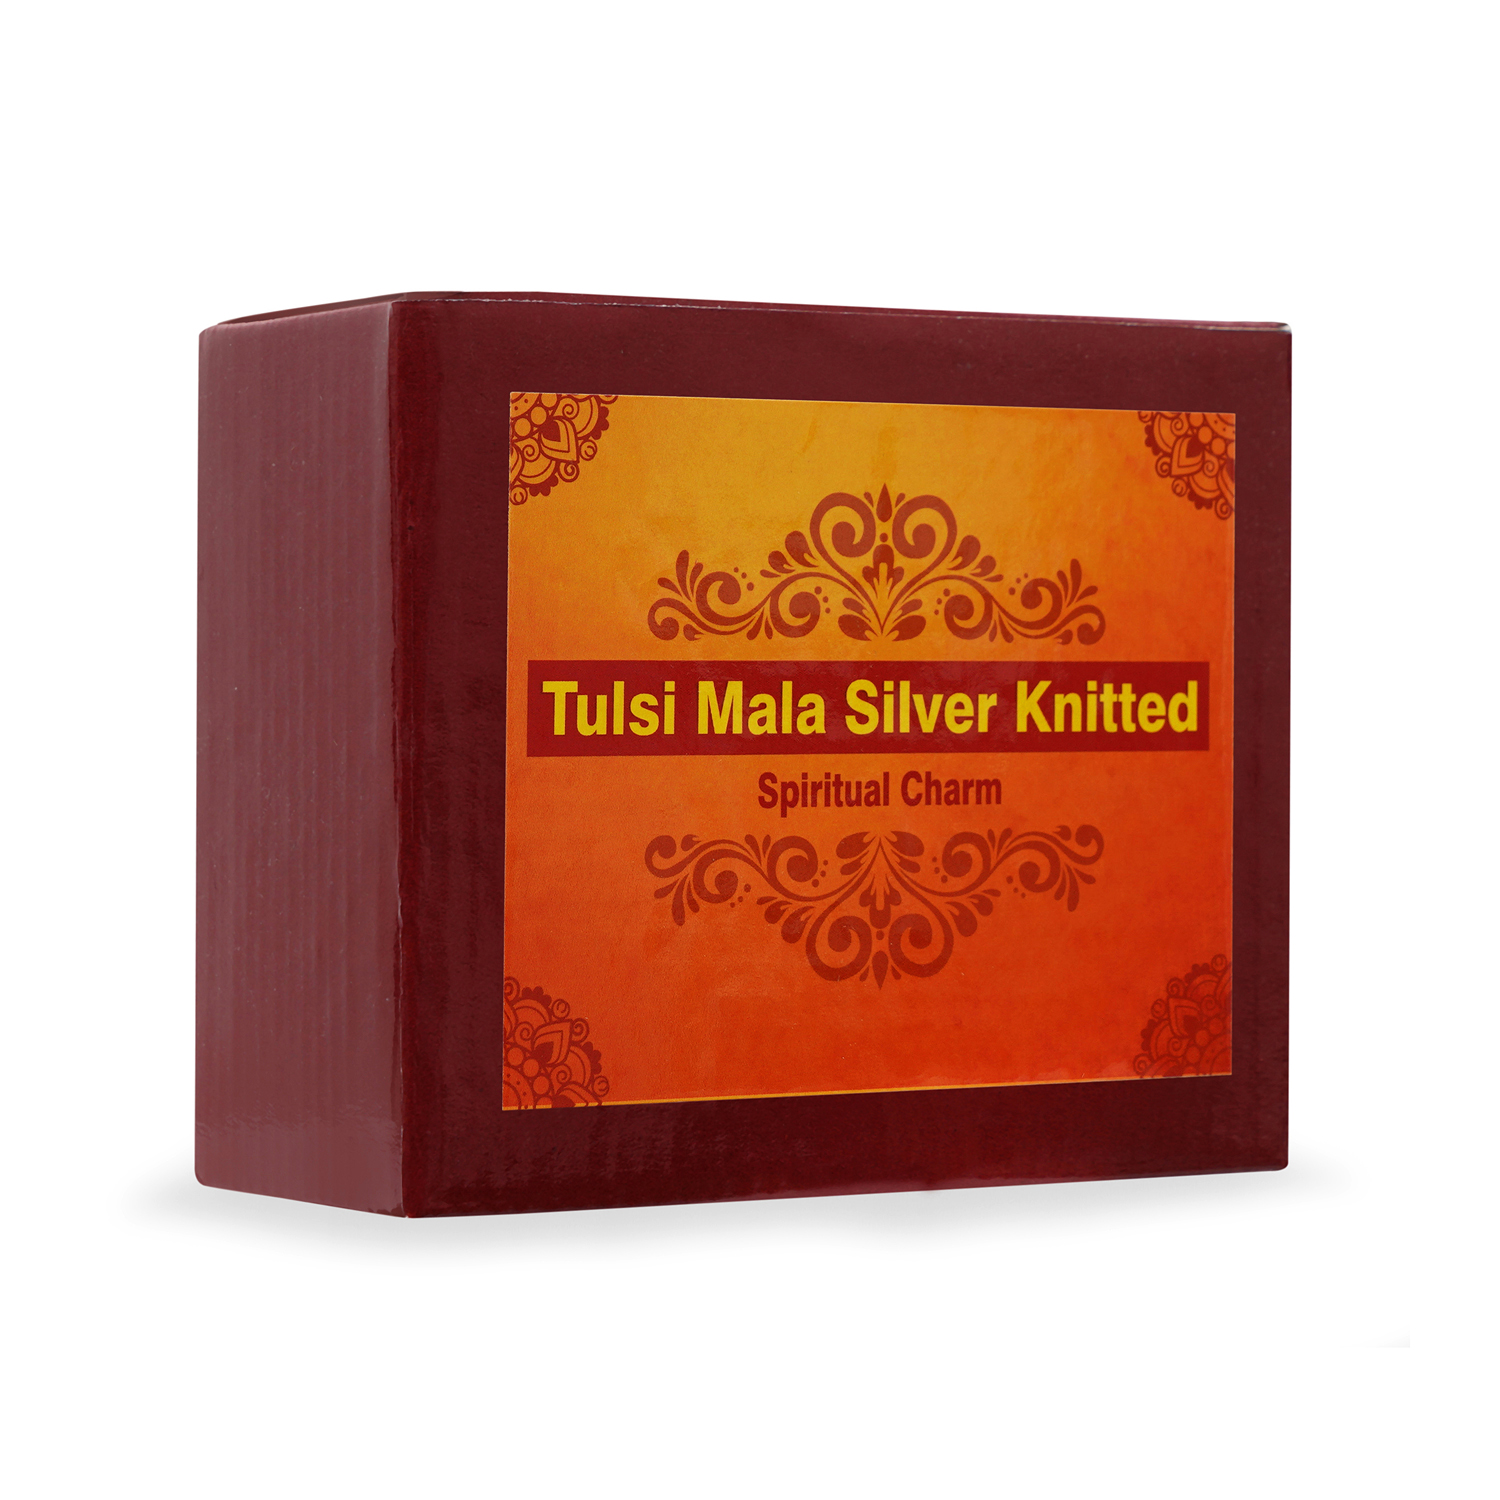 Tulsi mala silver knitted